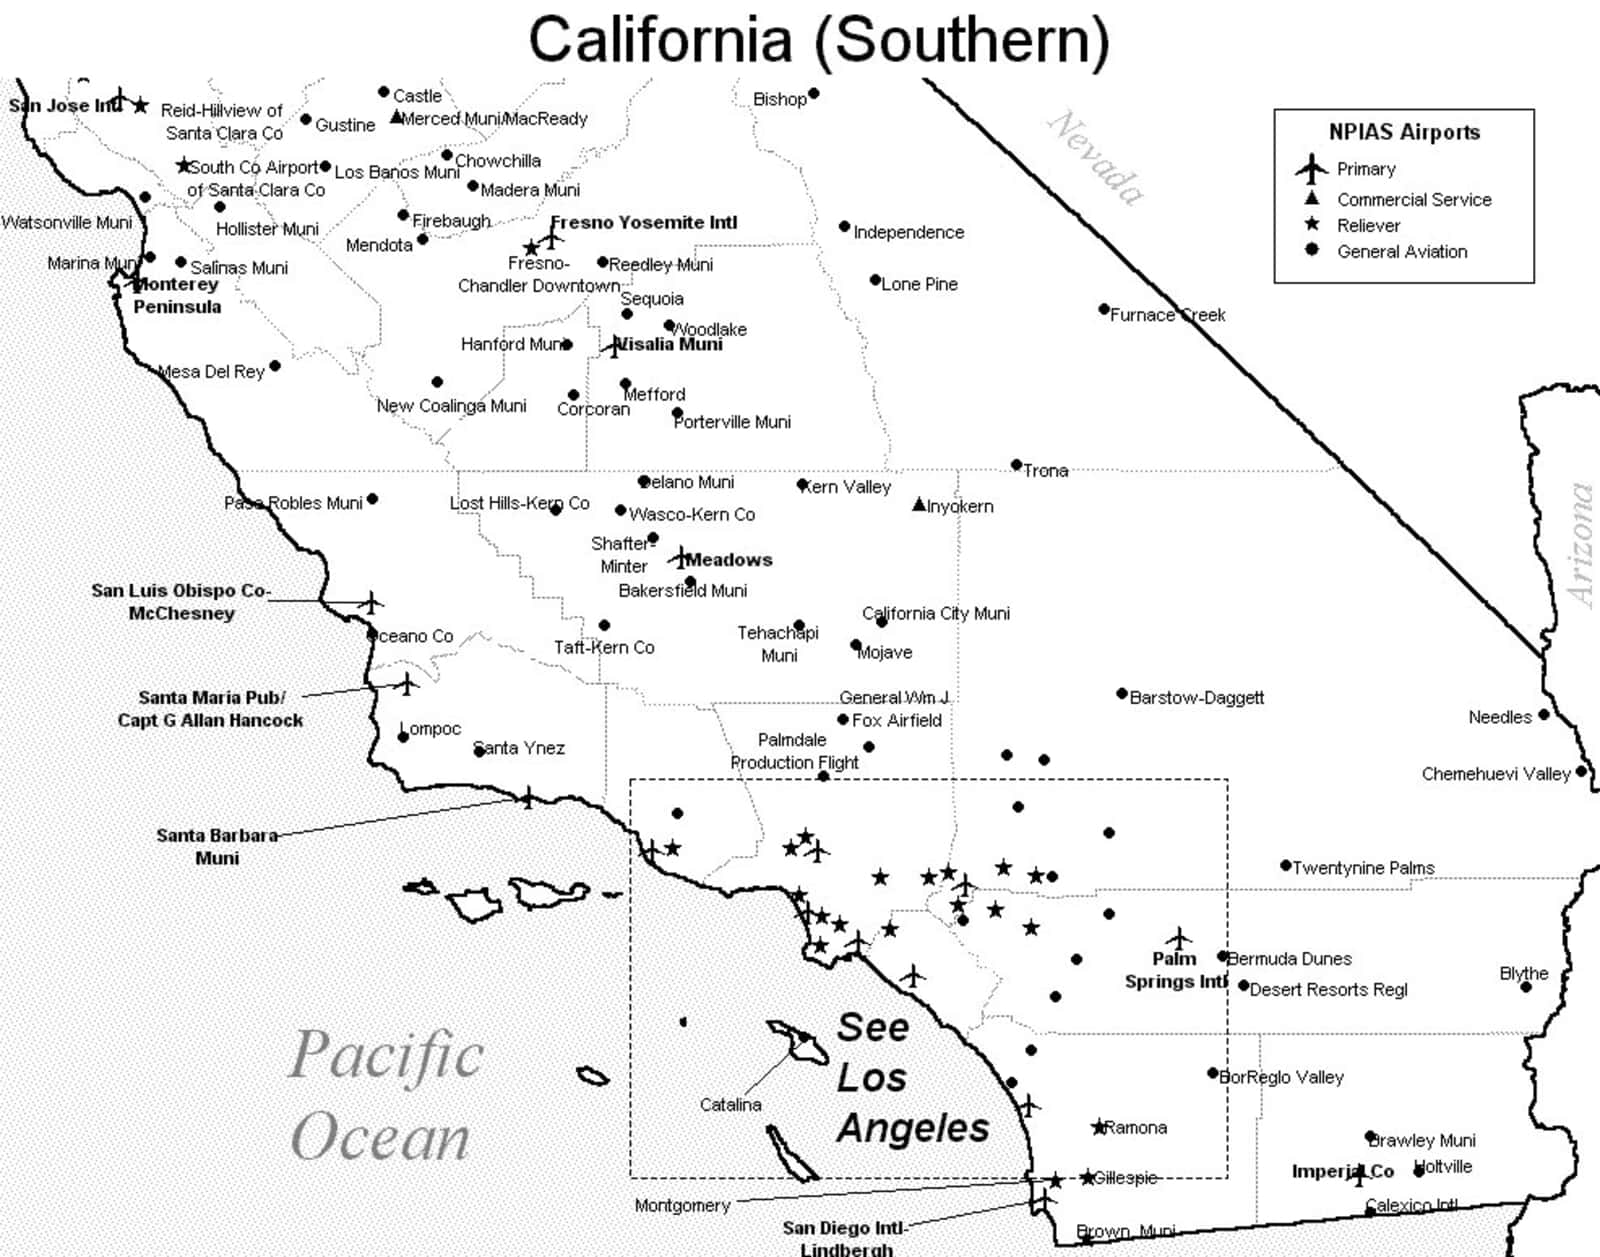 map southern california airports Southern California Airport Map Southern California Airports map southern california airports